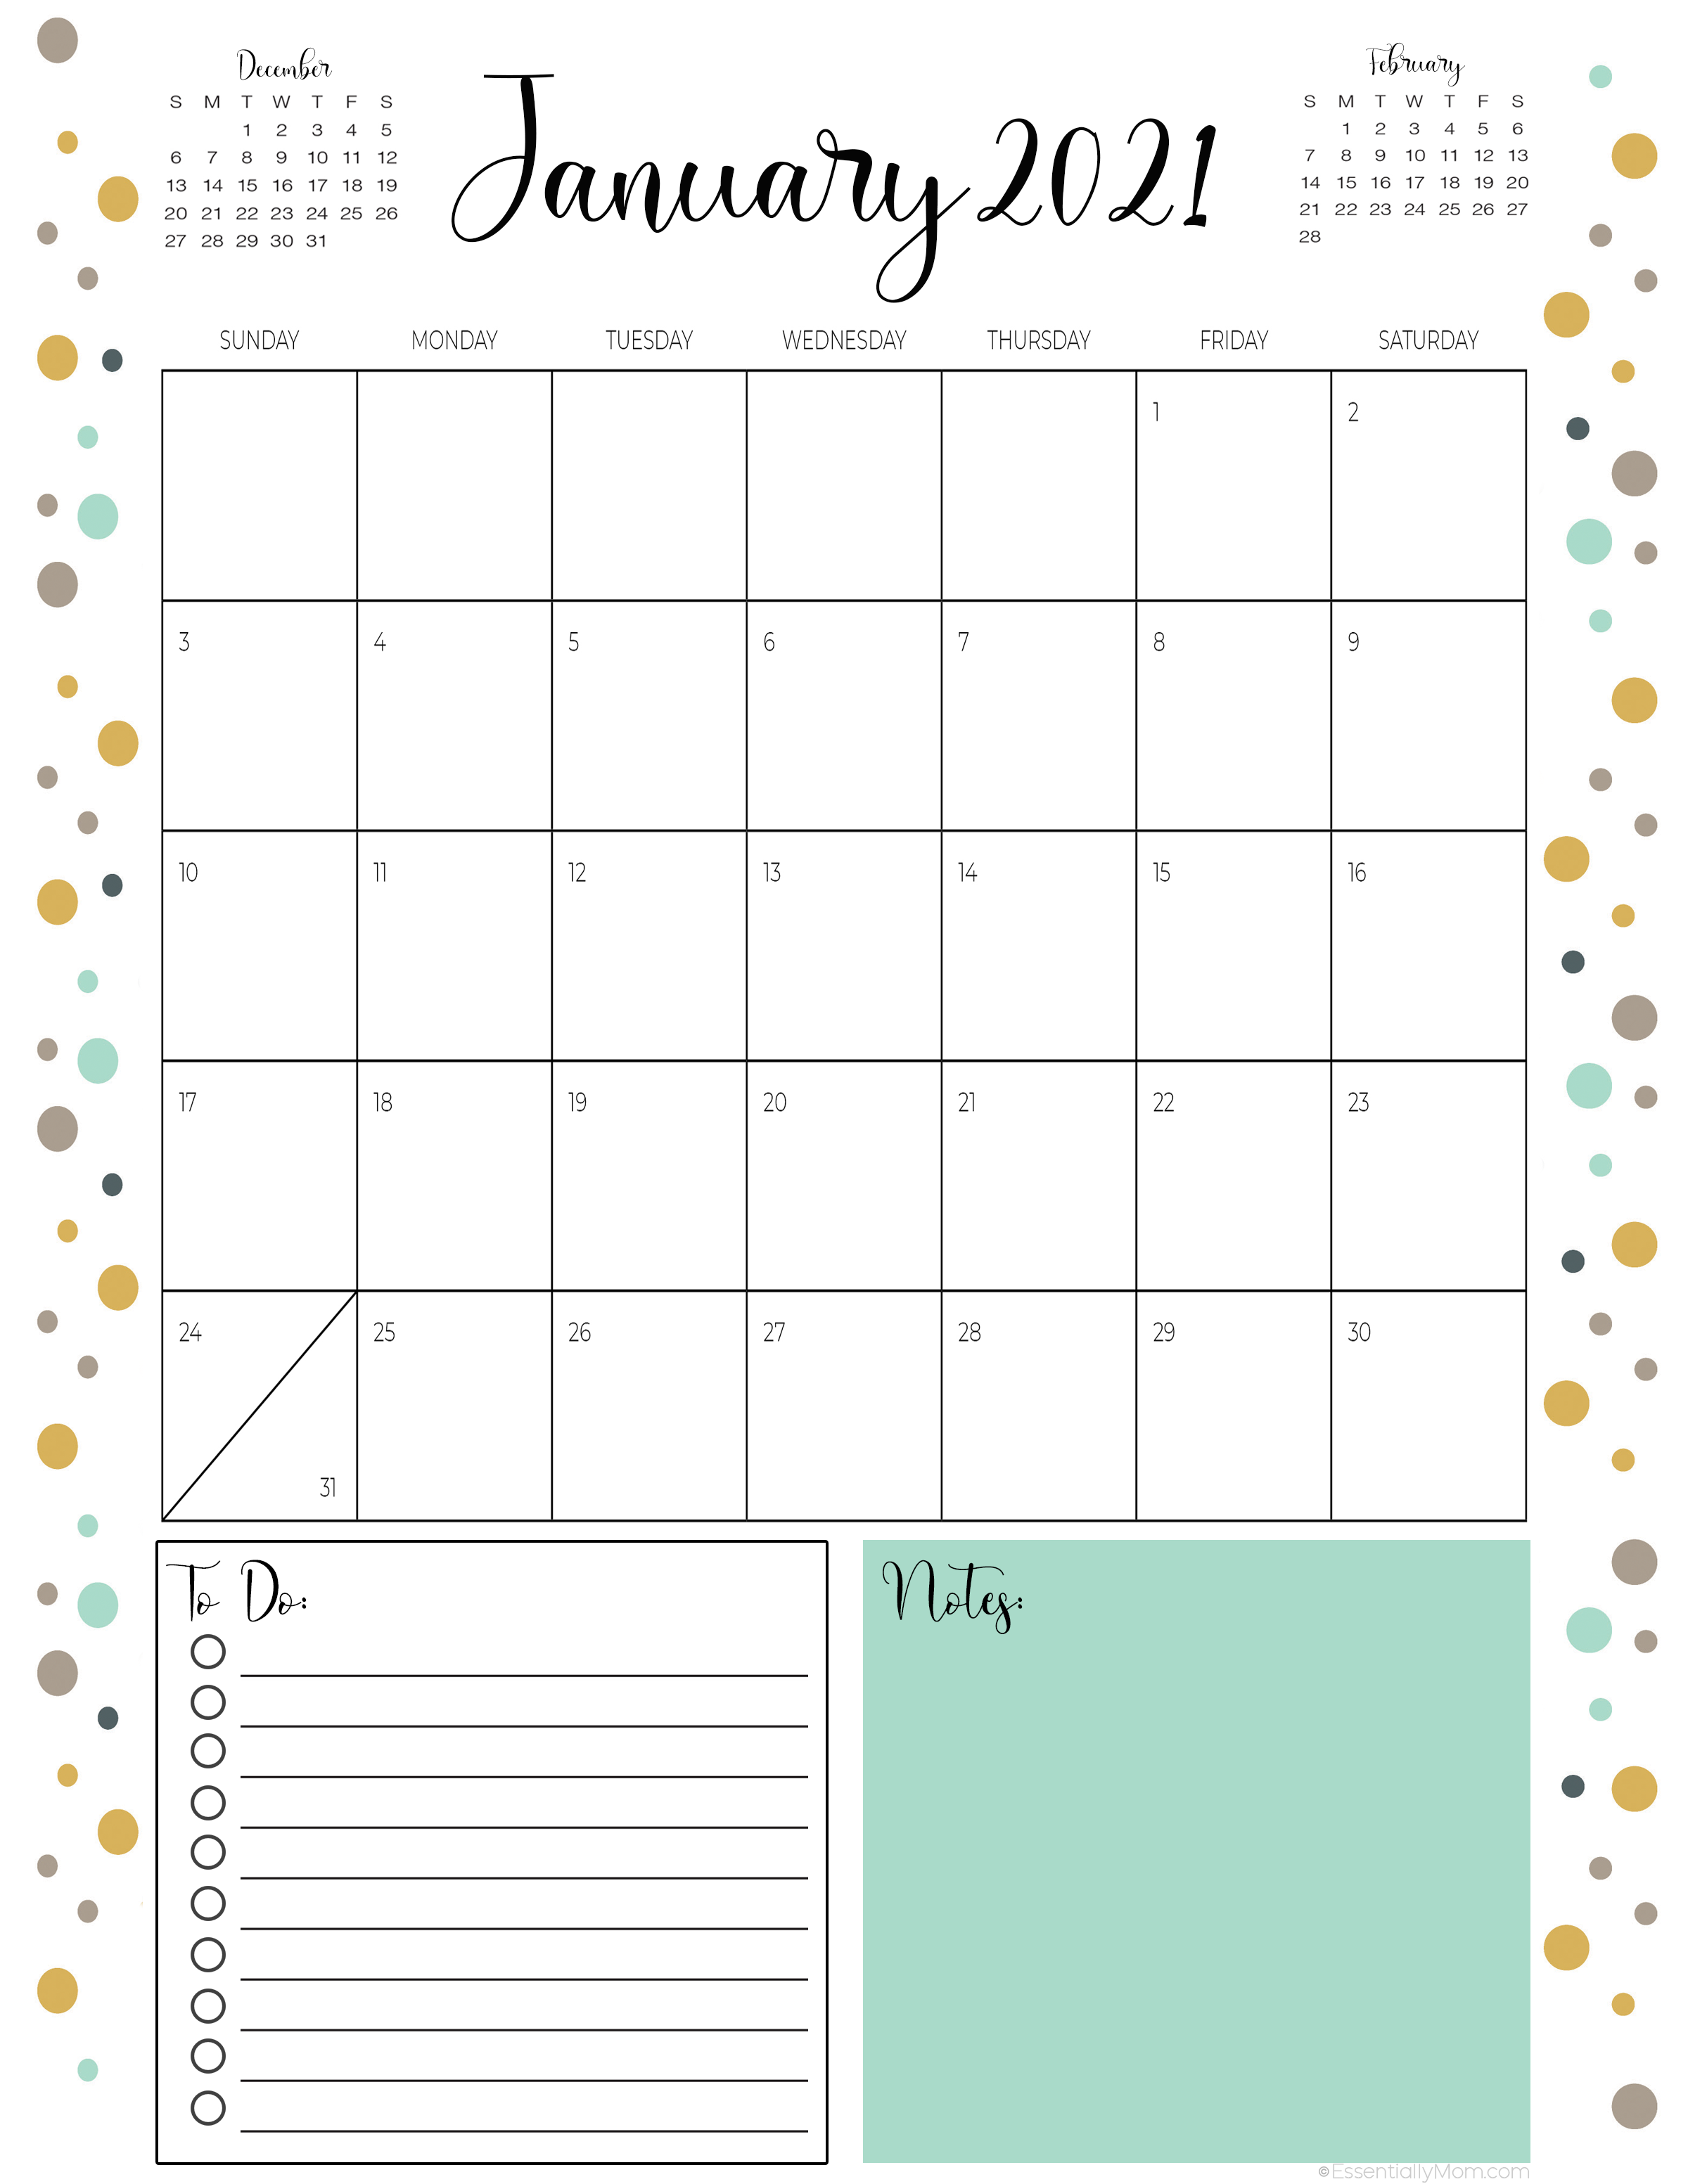 printable 2021 calendars,monthly calendar with to do list,monthly calendar with notes,monthly calendar print out, cute printable monthly calendar 2020